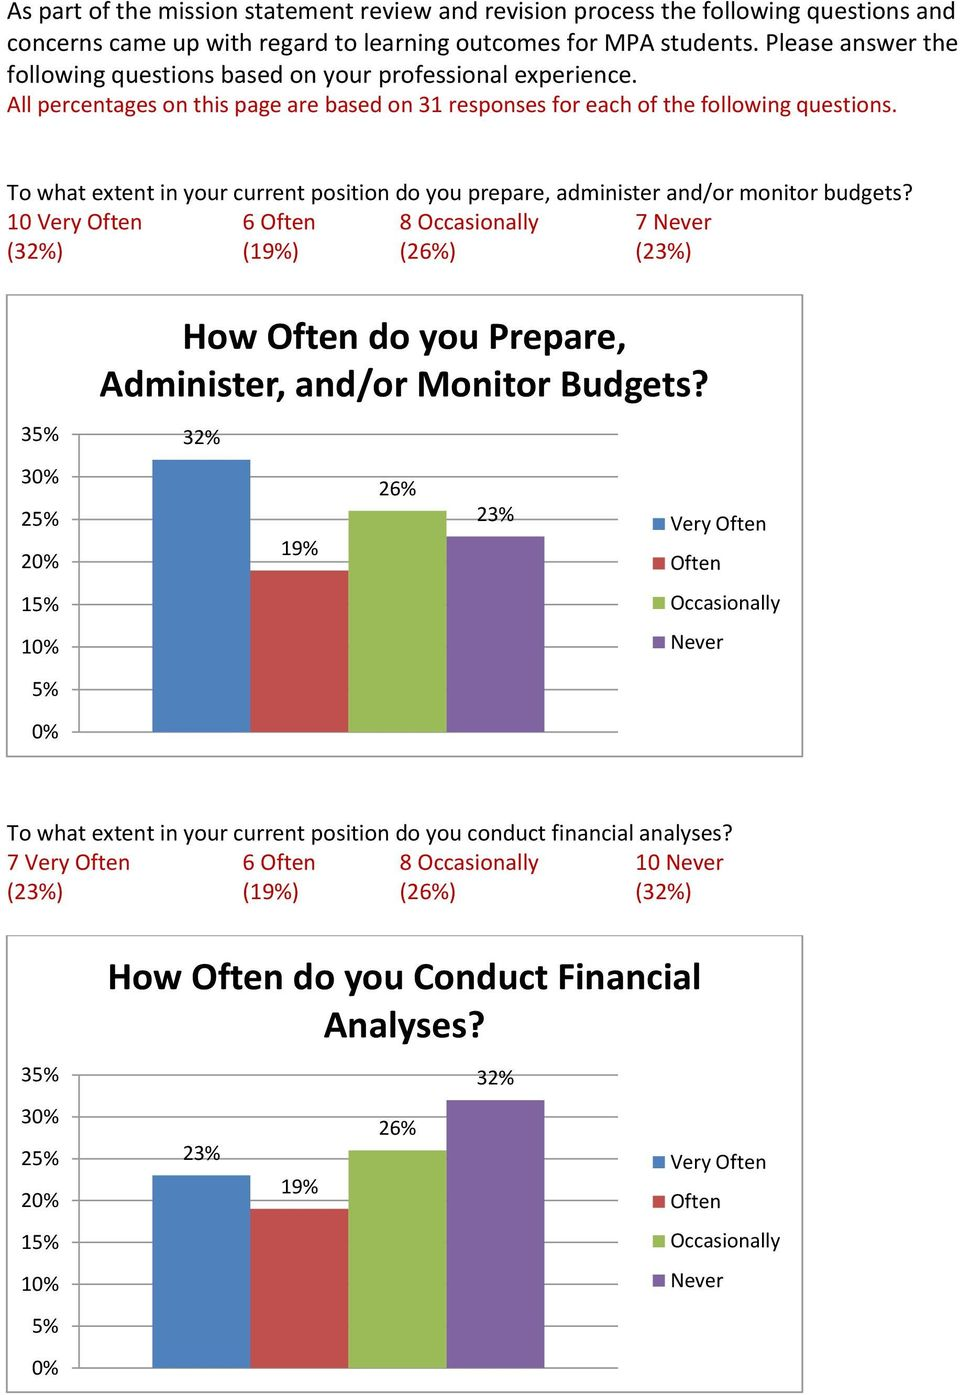 To what extent in your current position do you prepare, administer and/or monitor budgets?